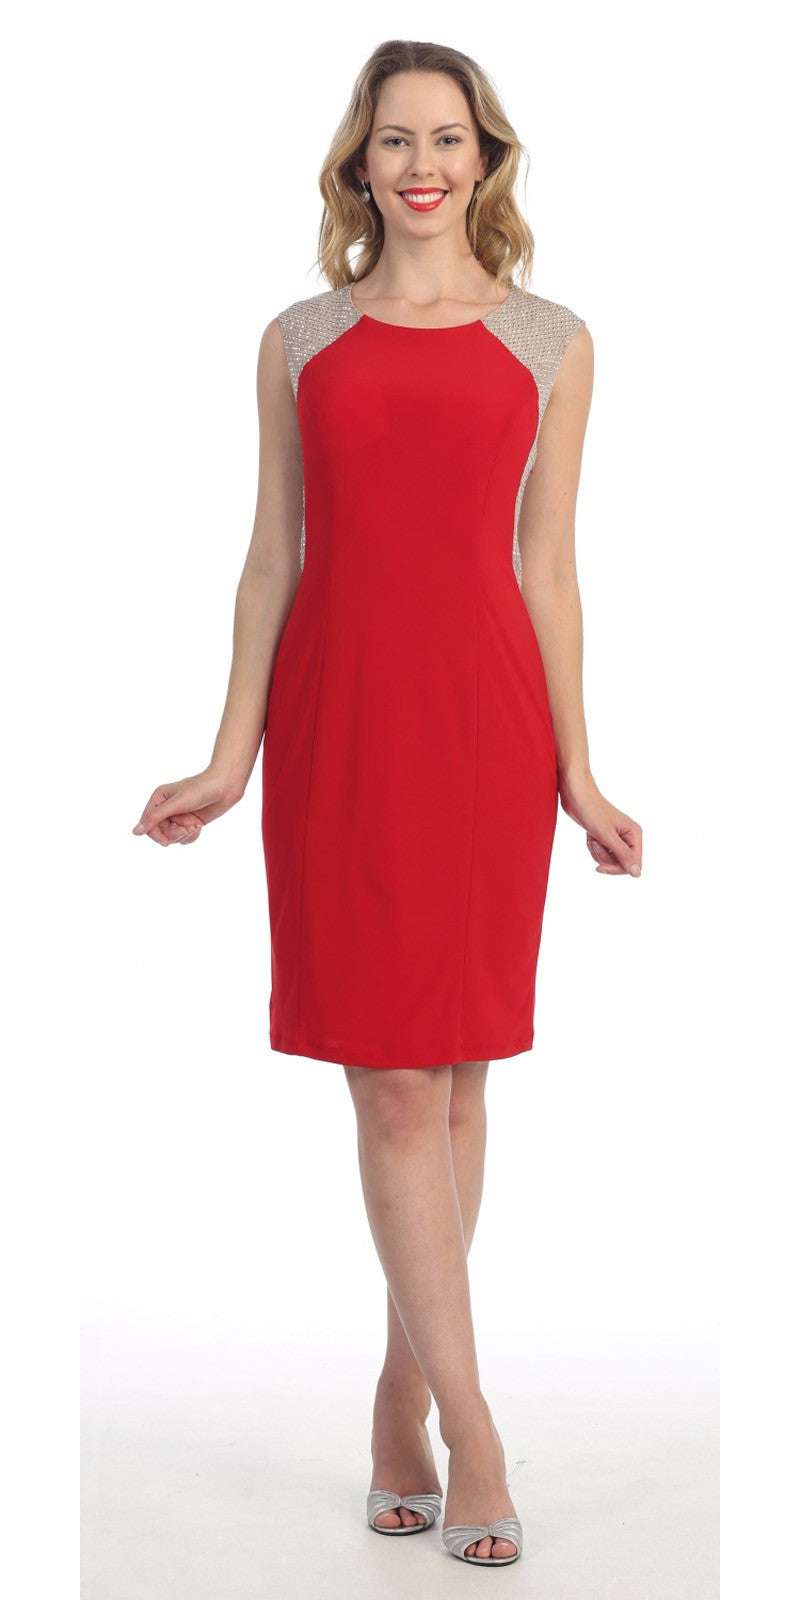 Knee Length Red Cocktail Dress Form Fitting Sleeveless Stones